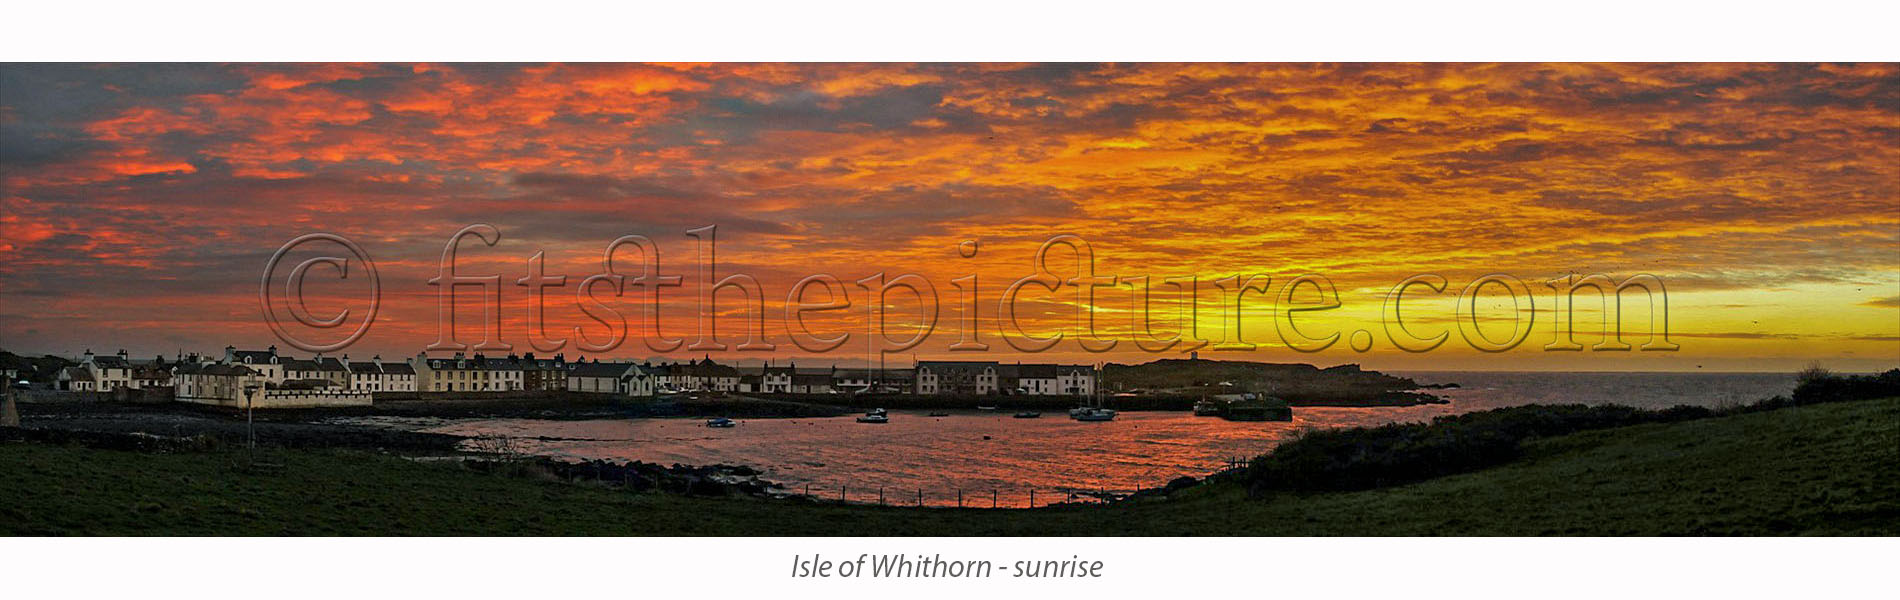 isle_of_whithorn__winter_sunrise.jpg